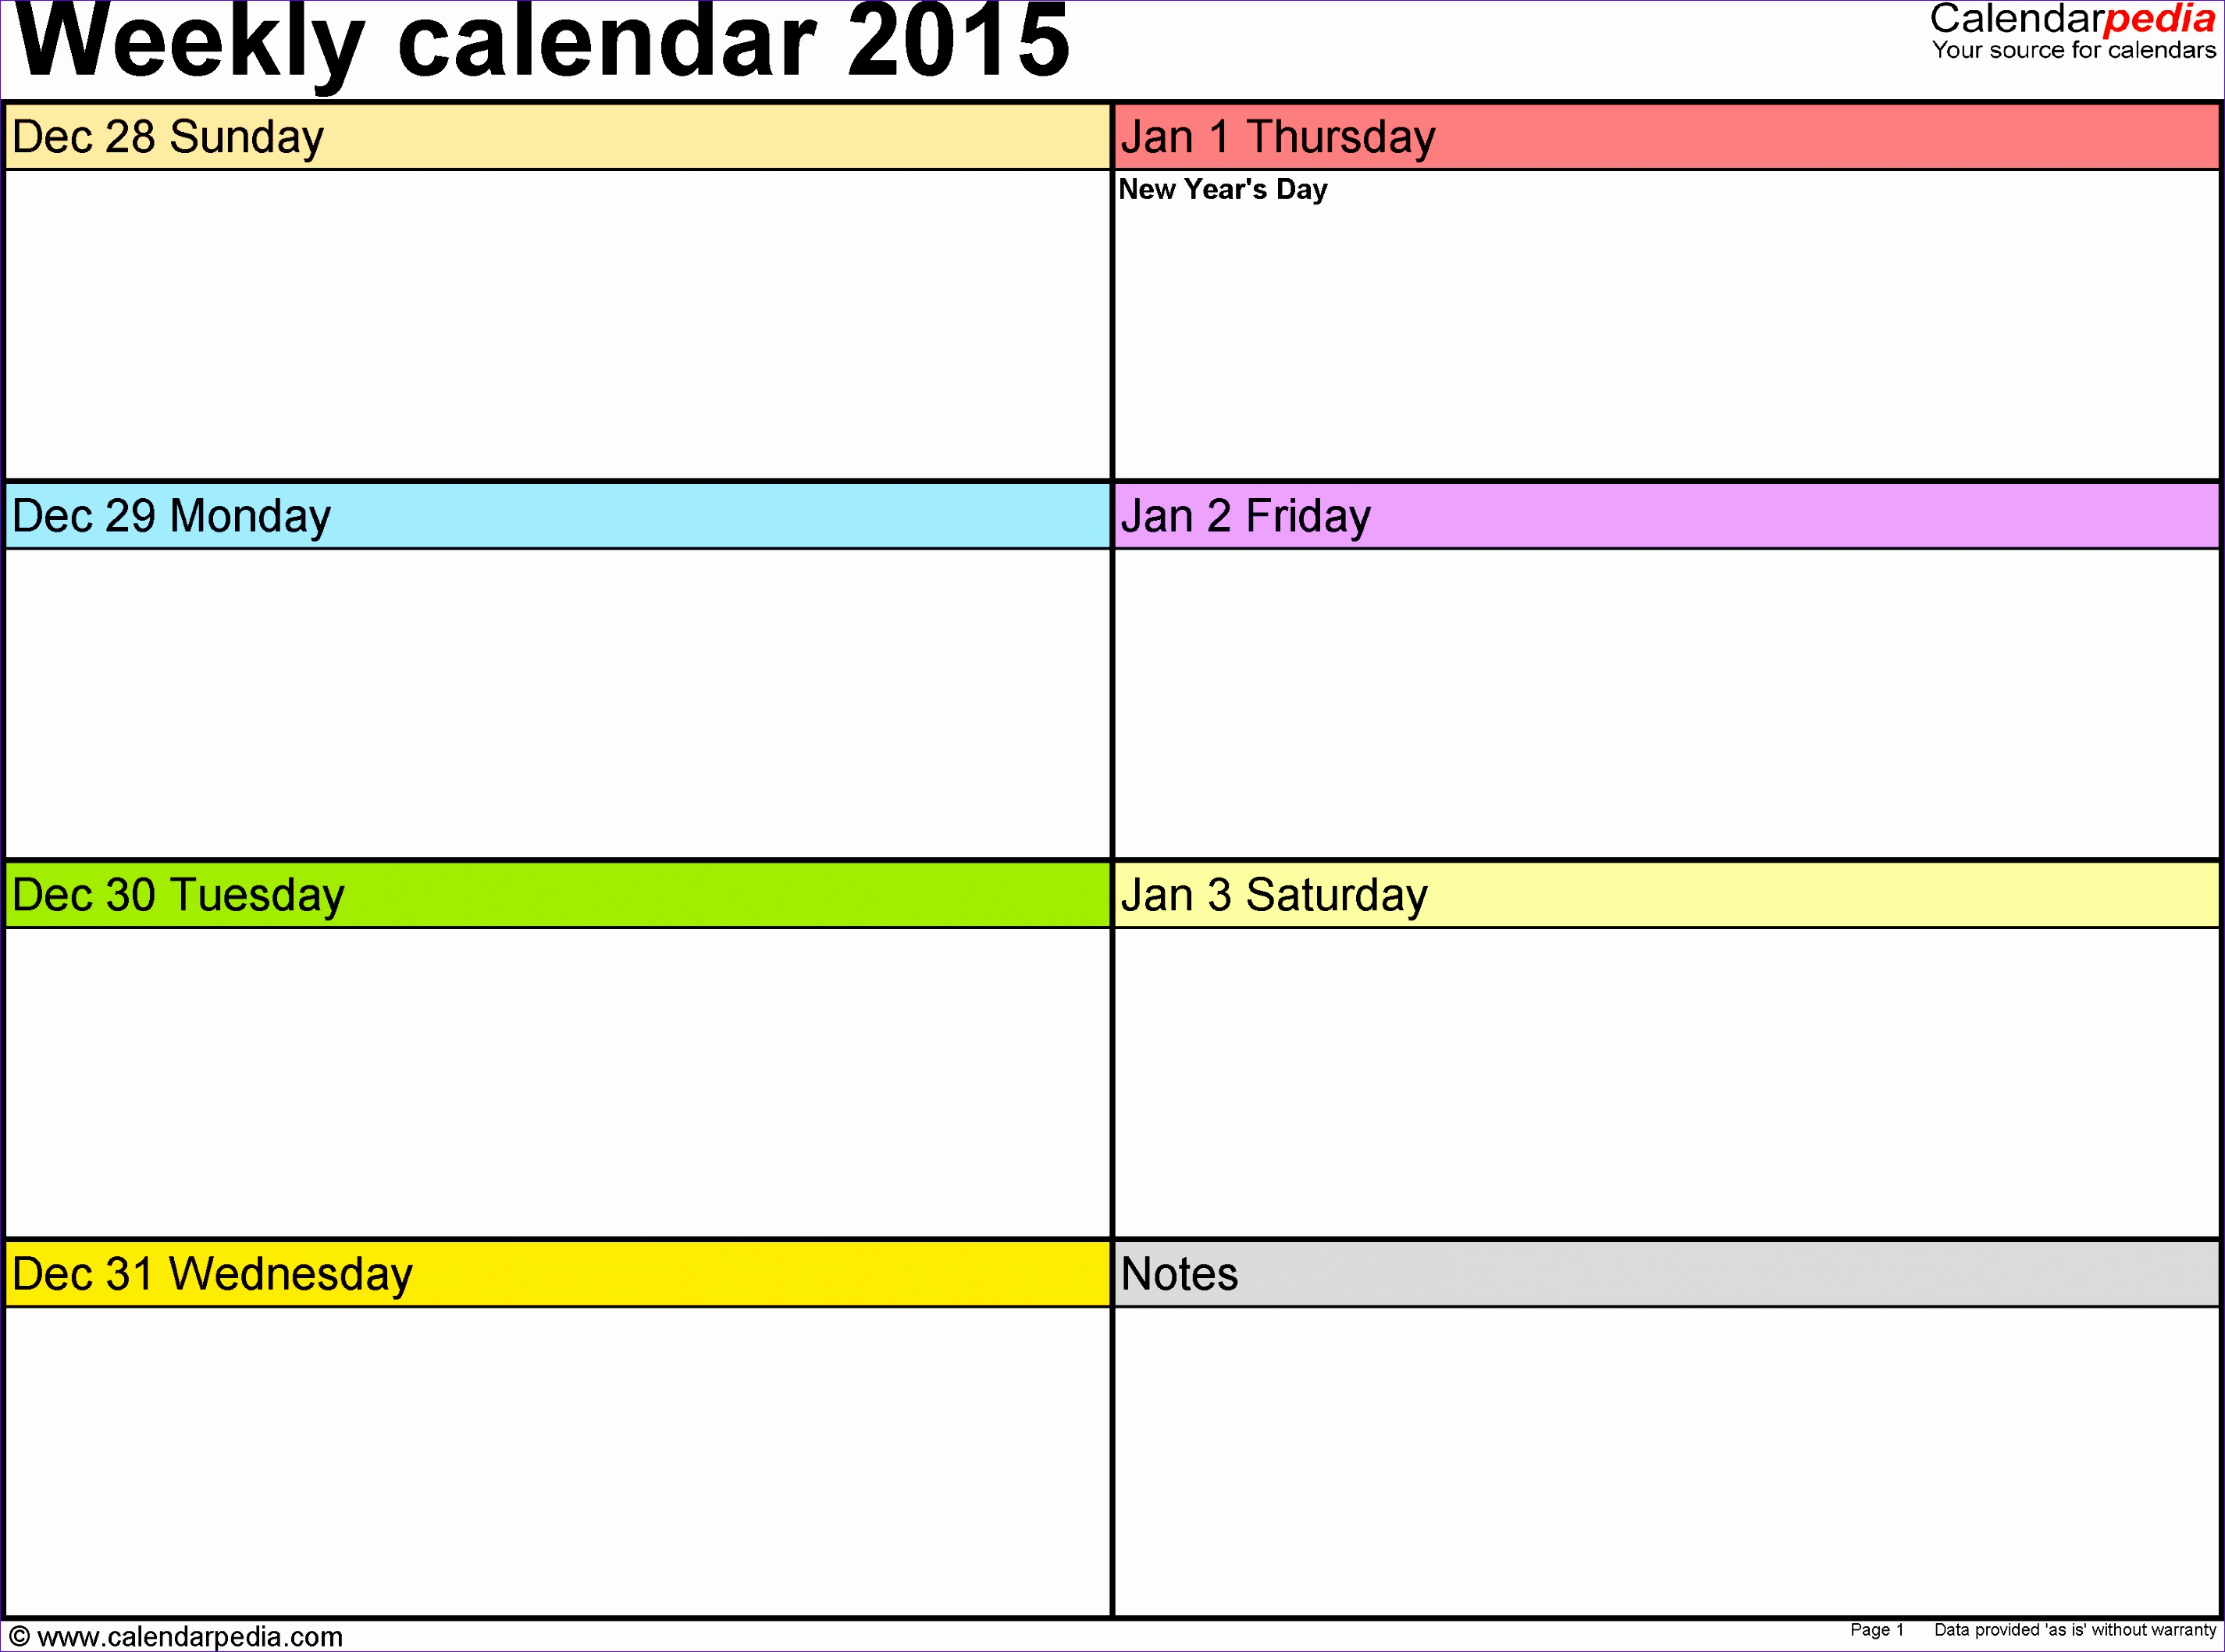 Weekly Rental Calendar Template : Schedule templates in excel exceltemplates